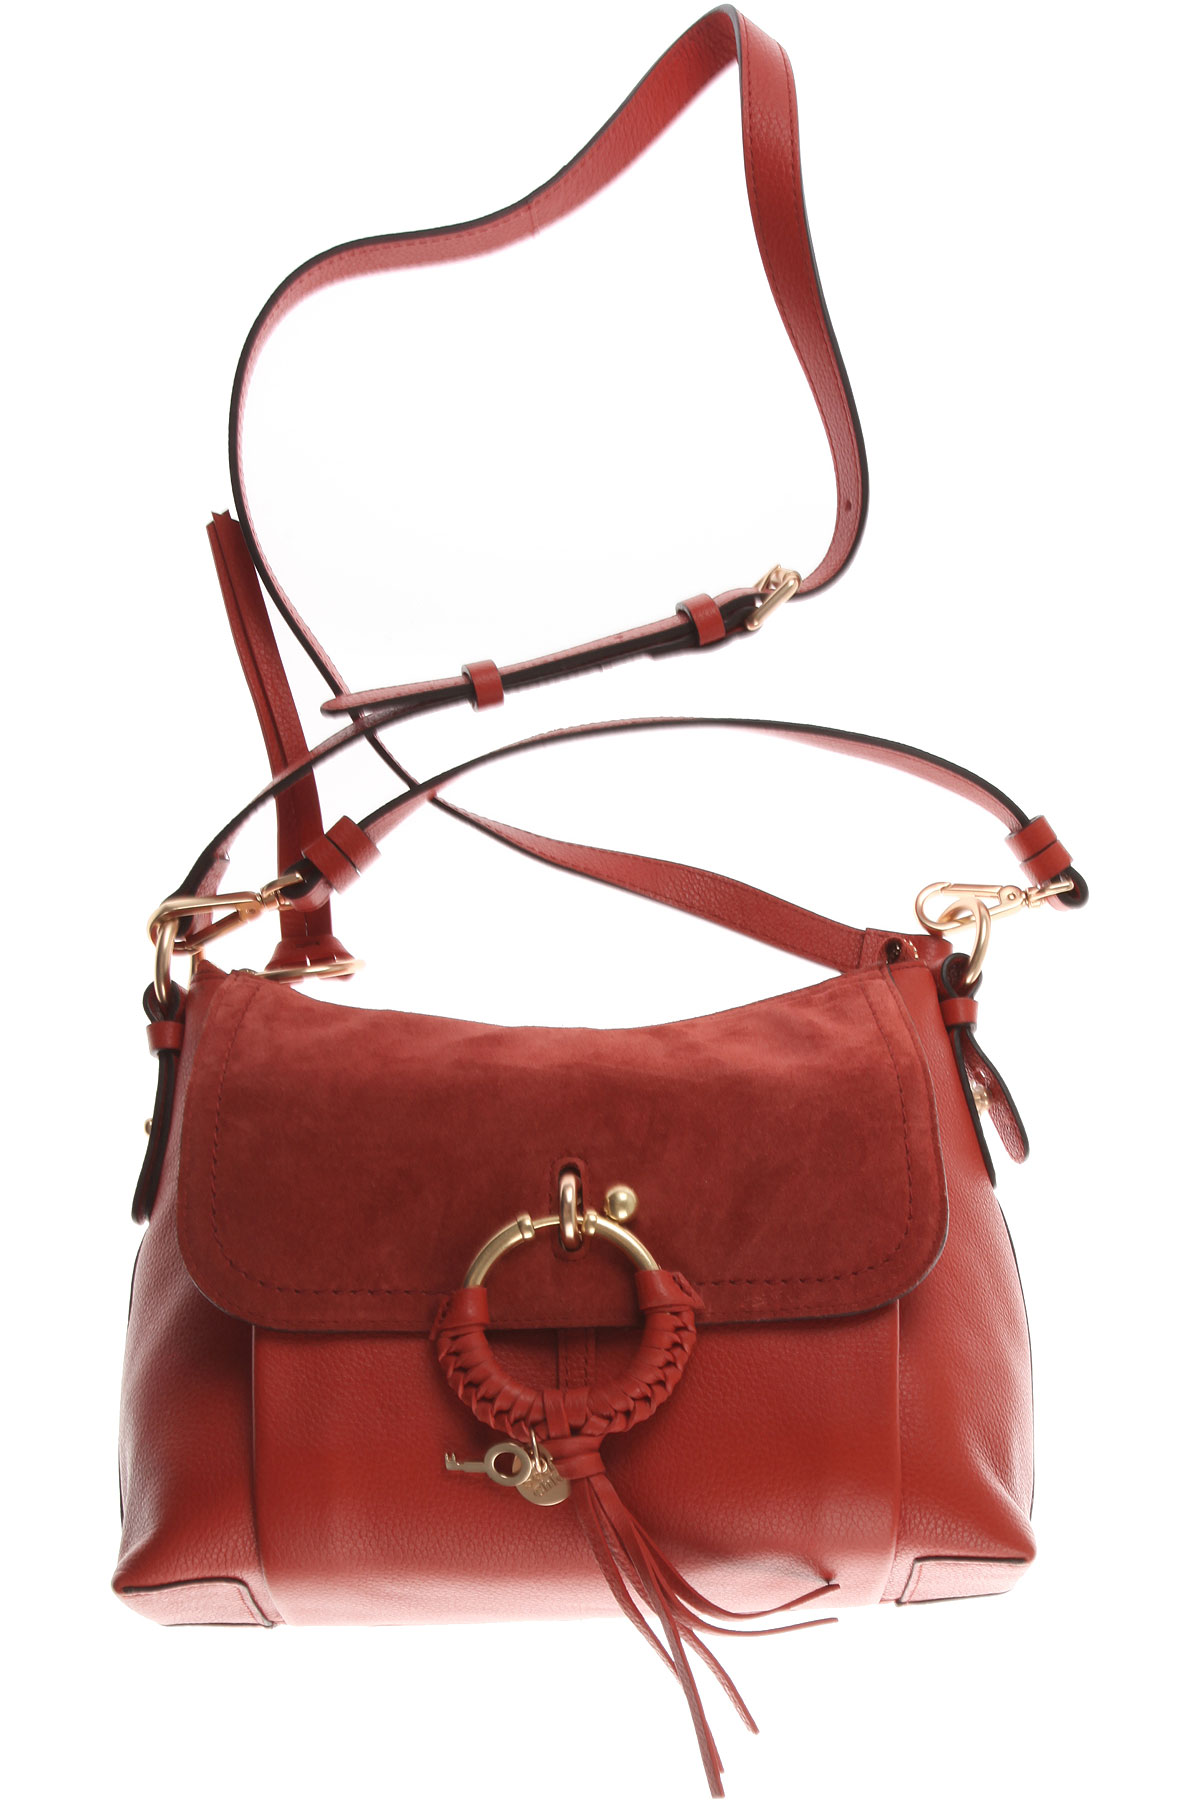 Image of See By Chloe Top Handle Handbag, Red Sand, Leather, 2017